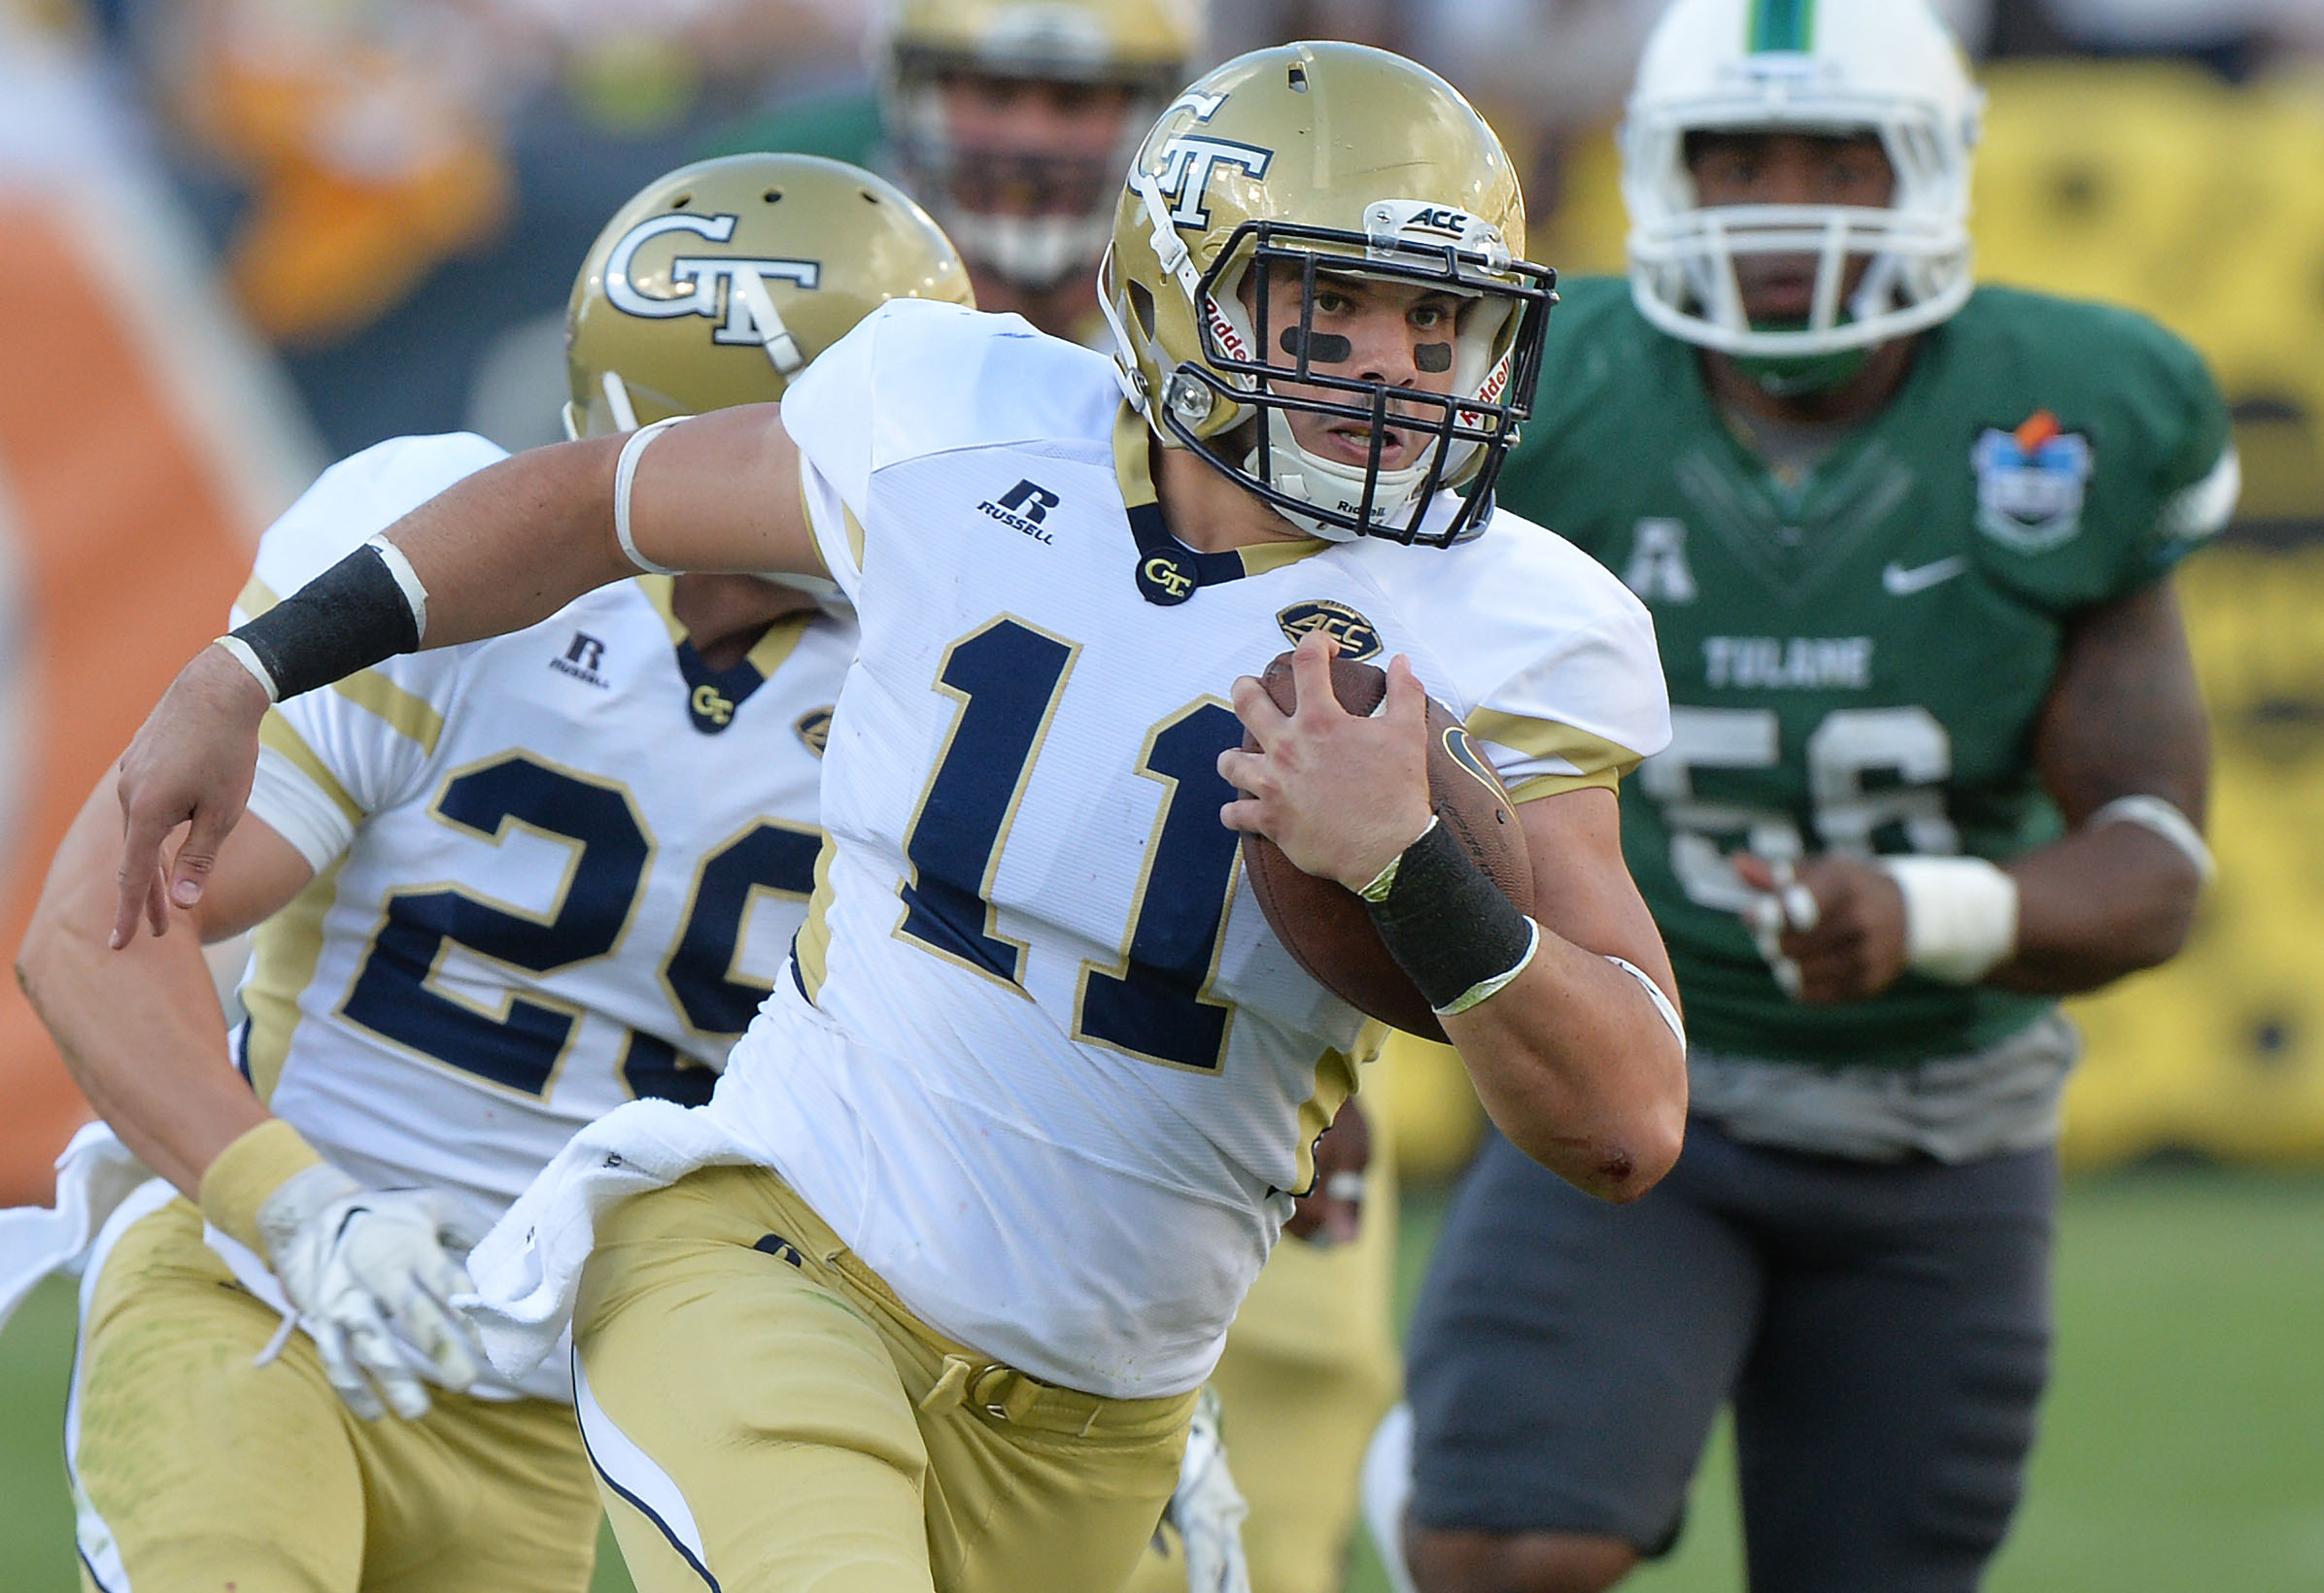 September 12, 2015 Atlanta - Georgia Tech Yellow Jackets quarterback Matthew Jordan (11) runs for a touchdown in the second half at Bobby Dodd Stadium on Saturday, September 12, 2015. Georgia Tech Yellow Jackets won 65 - 10 over the Tulane Green Wave. HYOSUB SHIN / HSHIN@AJC.COM